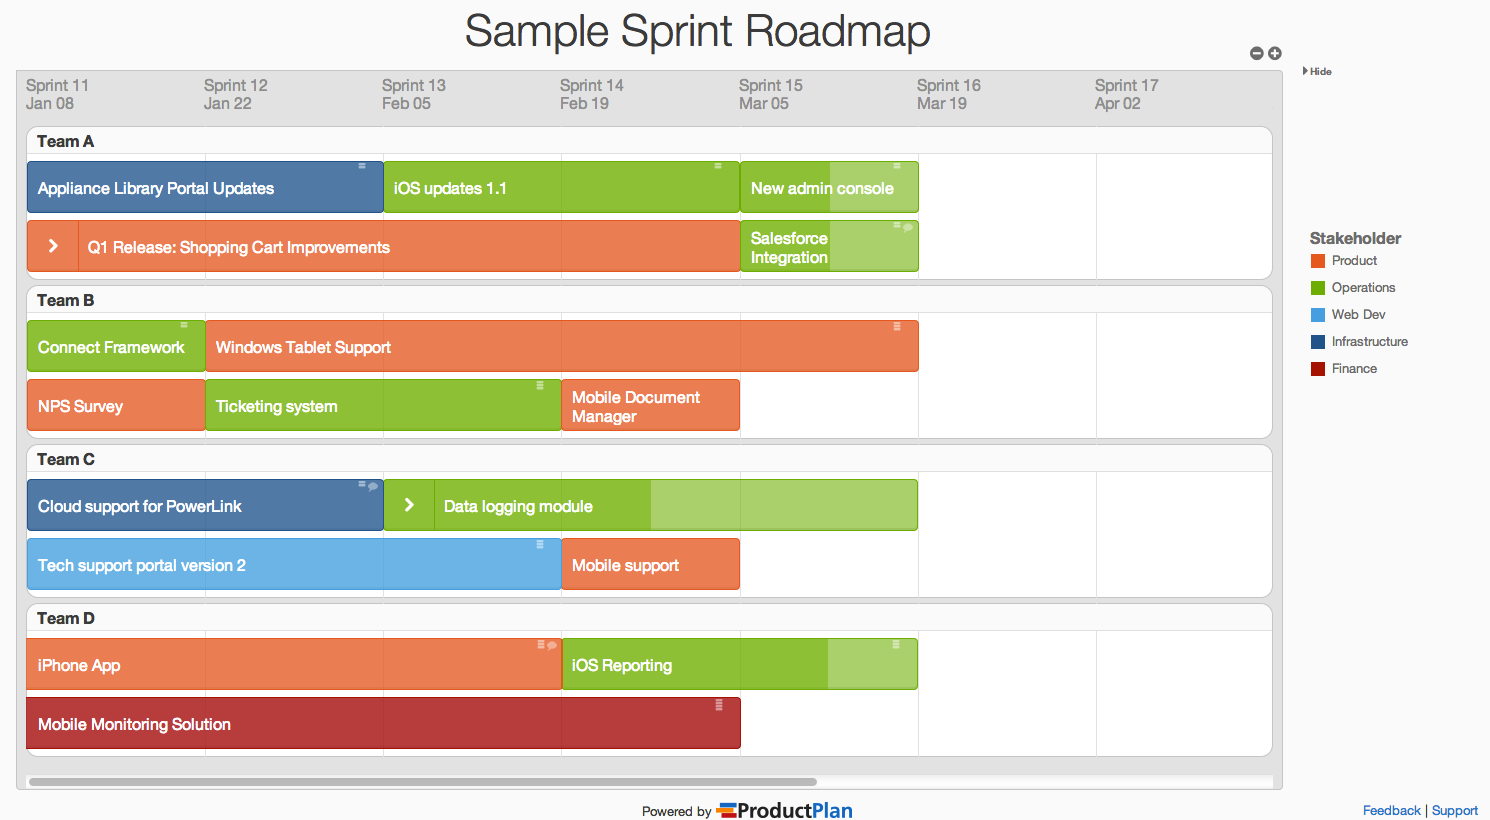 Sample Sprint Roadmap Roadmap, Good essay, What is a product